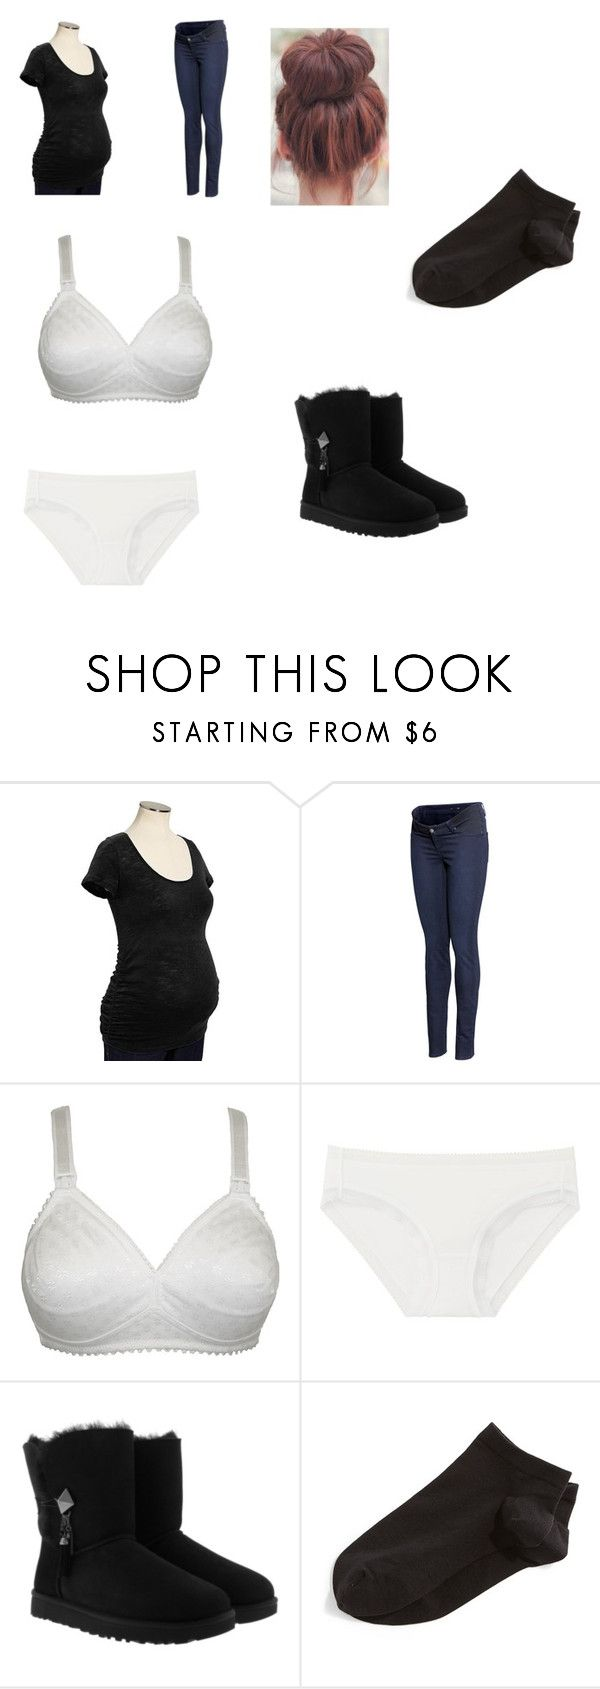 """""""Untitled #417"""" by sharotto53 ❤ liked on Polyvore featuring Old Navy, H&M, Naturana, Uniqlo, UGG and Wolford"""